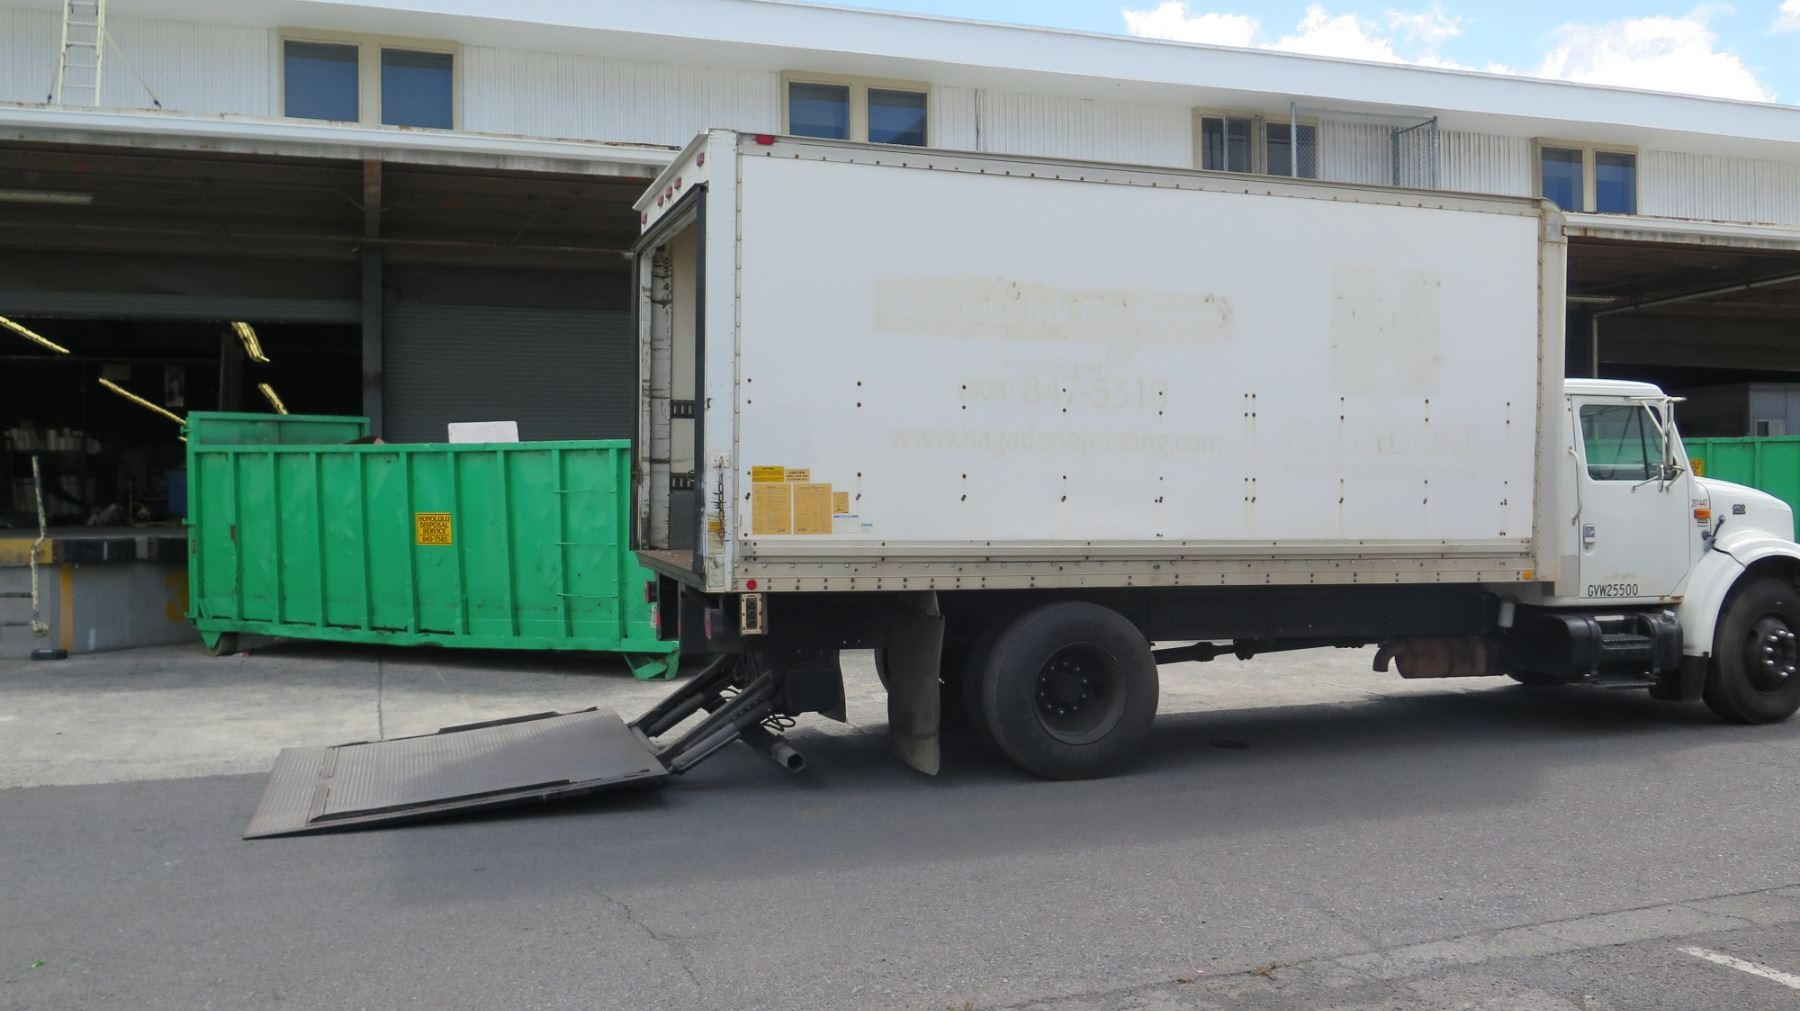 hight resolution of  image 4 1997 international box truck with lift gate